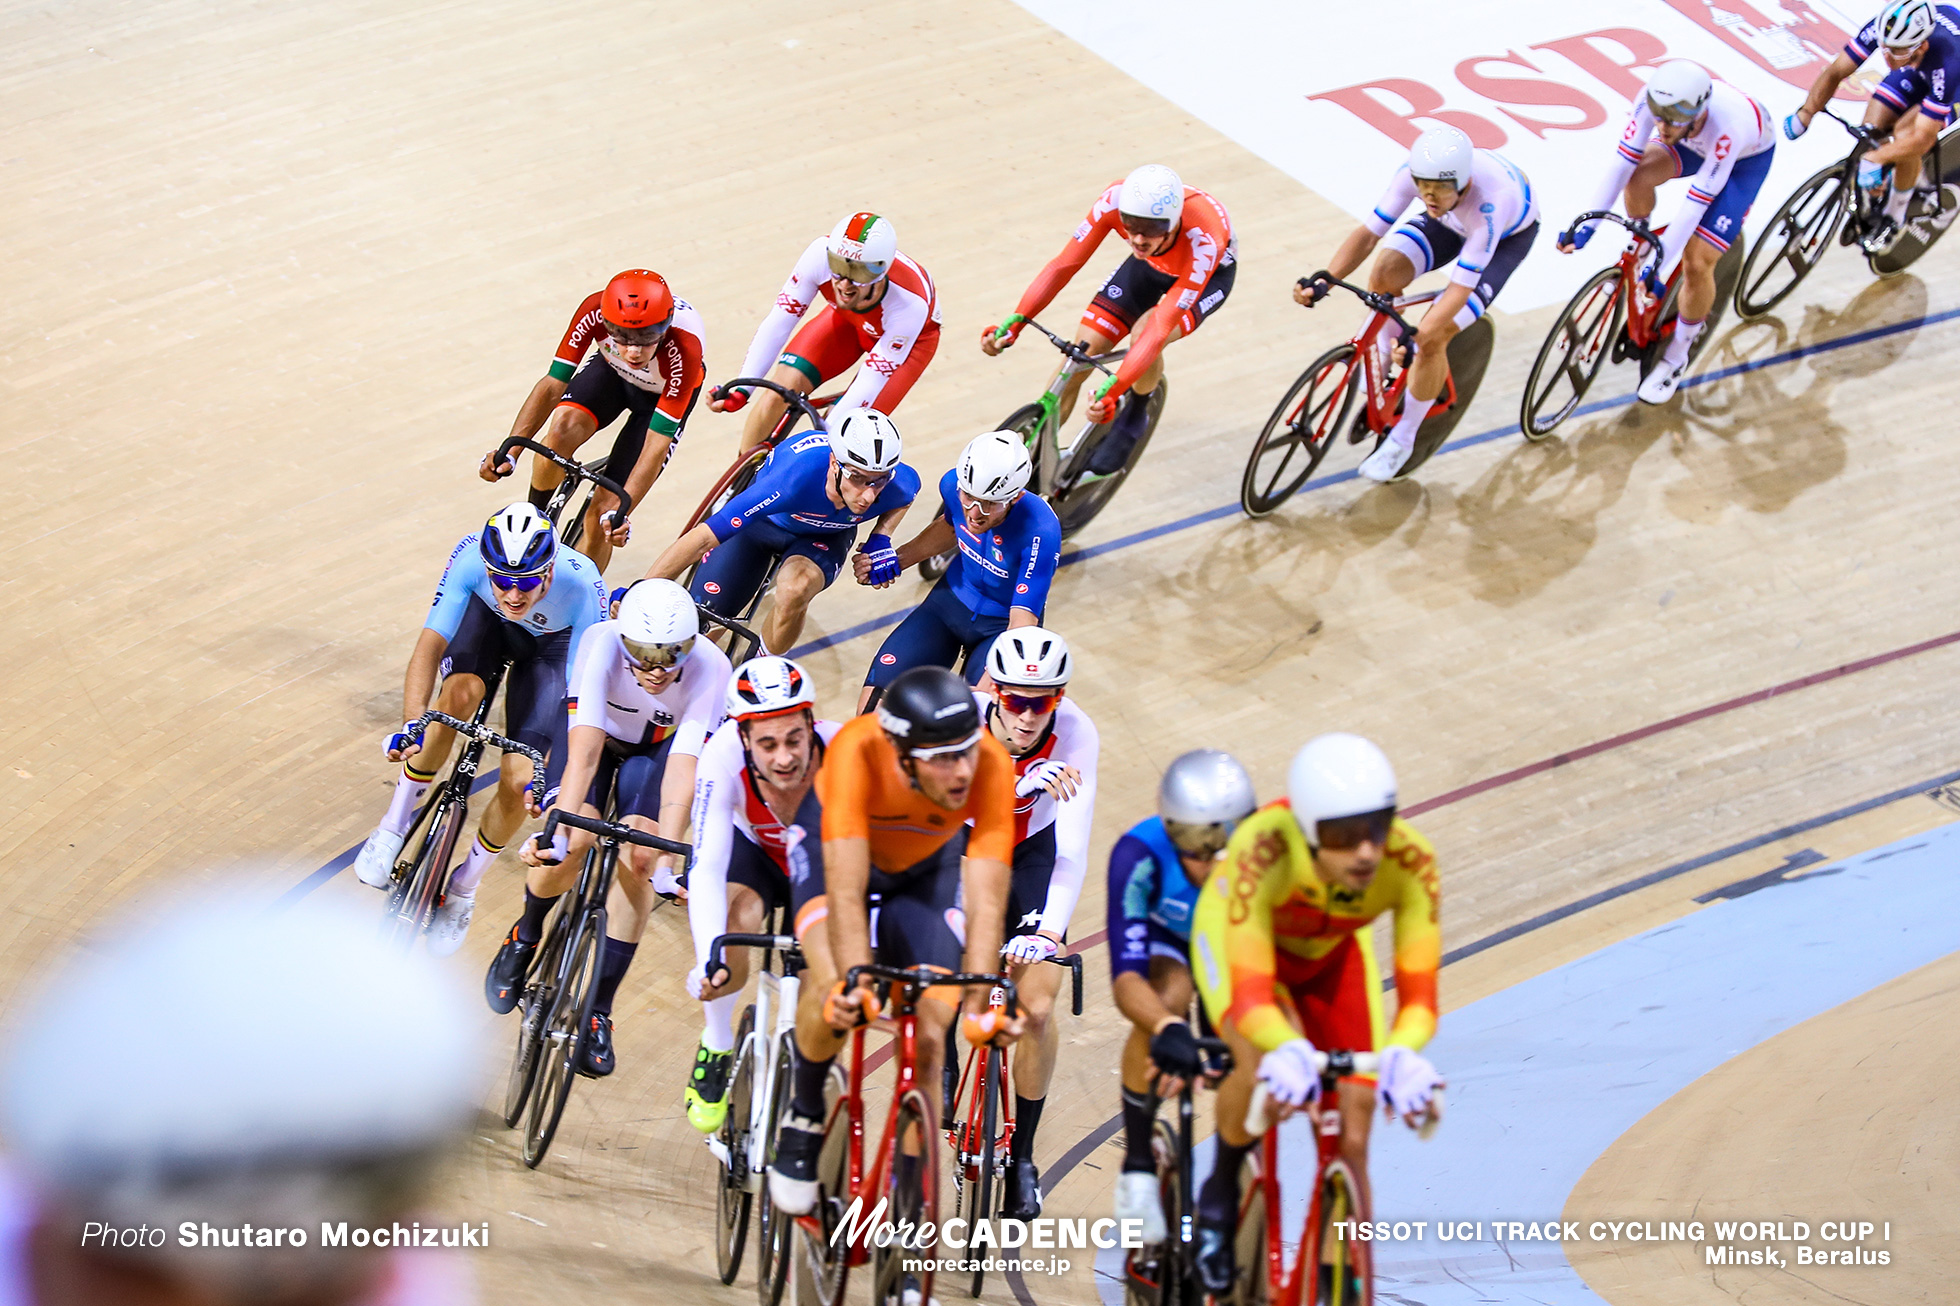 Men's Madison / TISSOT UCI TRACK CYCLING WORLD CUP I, Minsk, Beralus